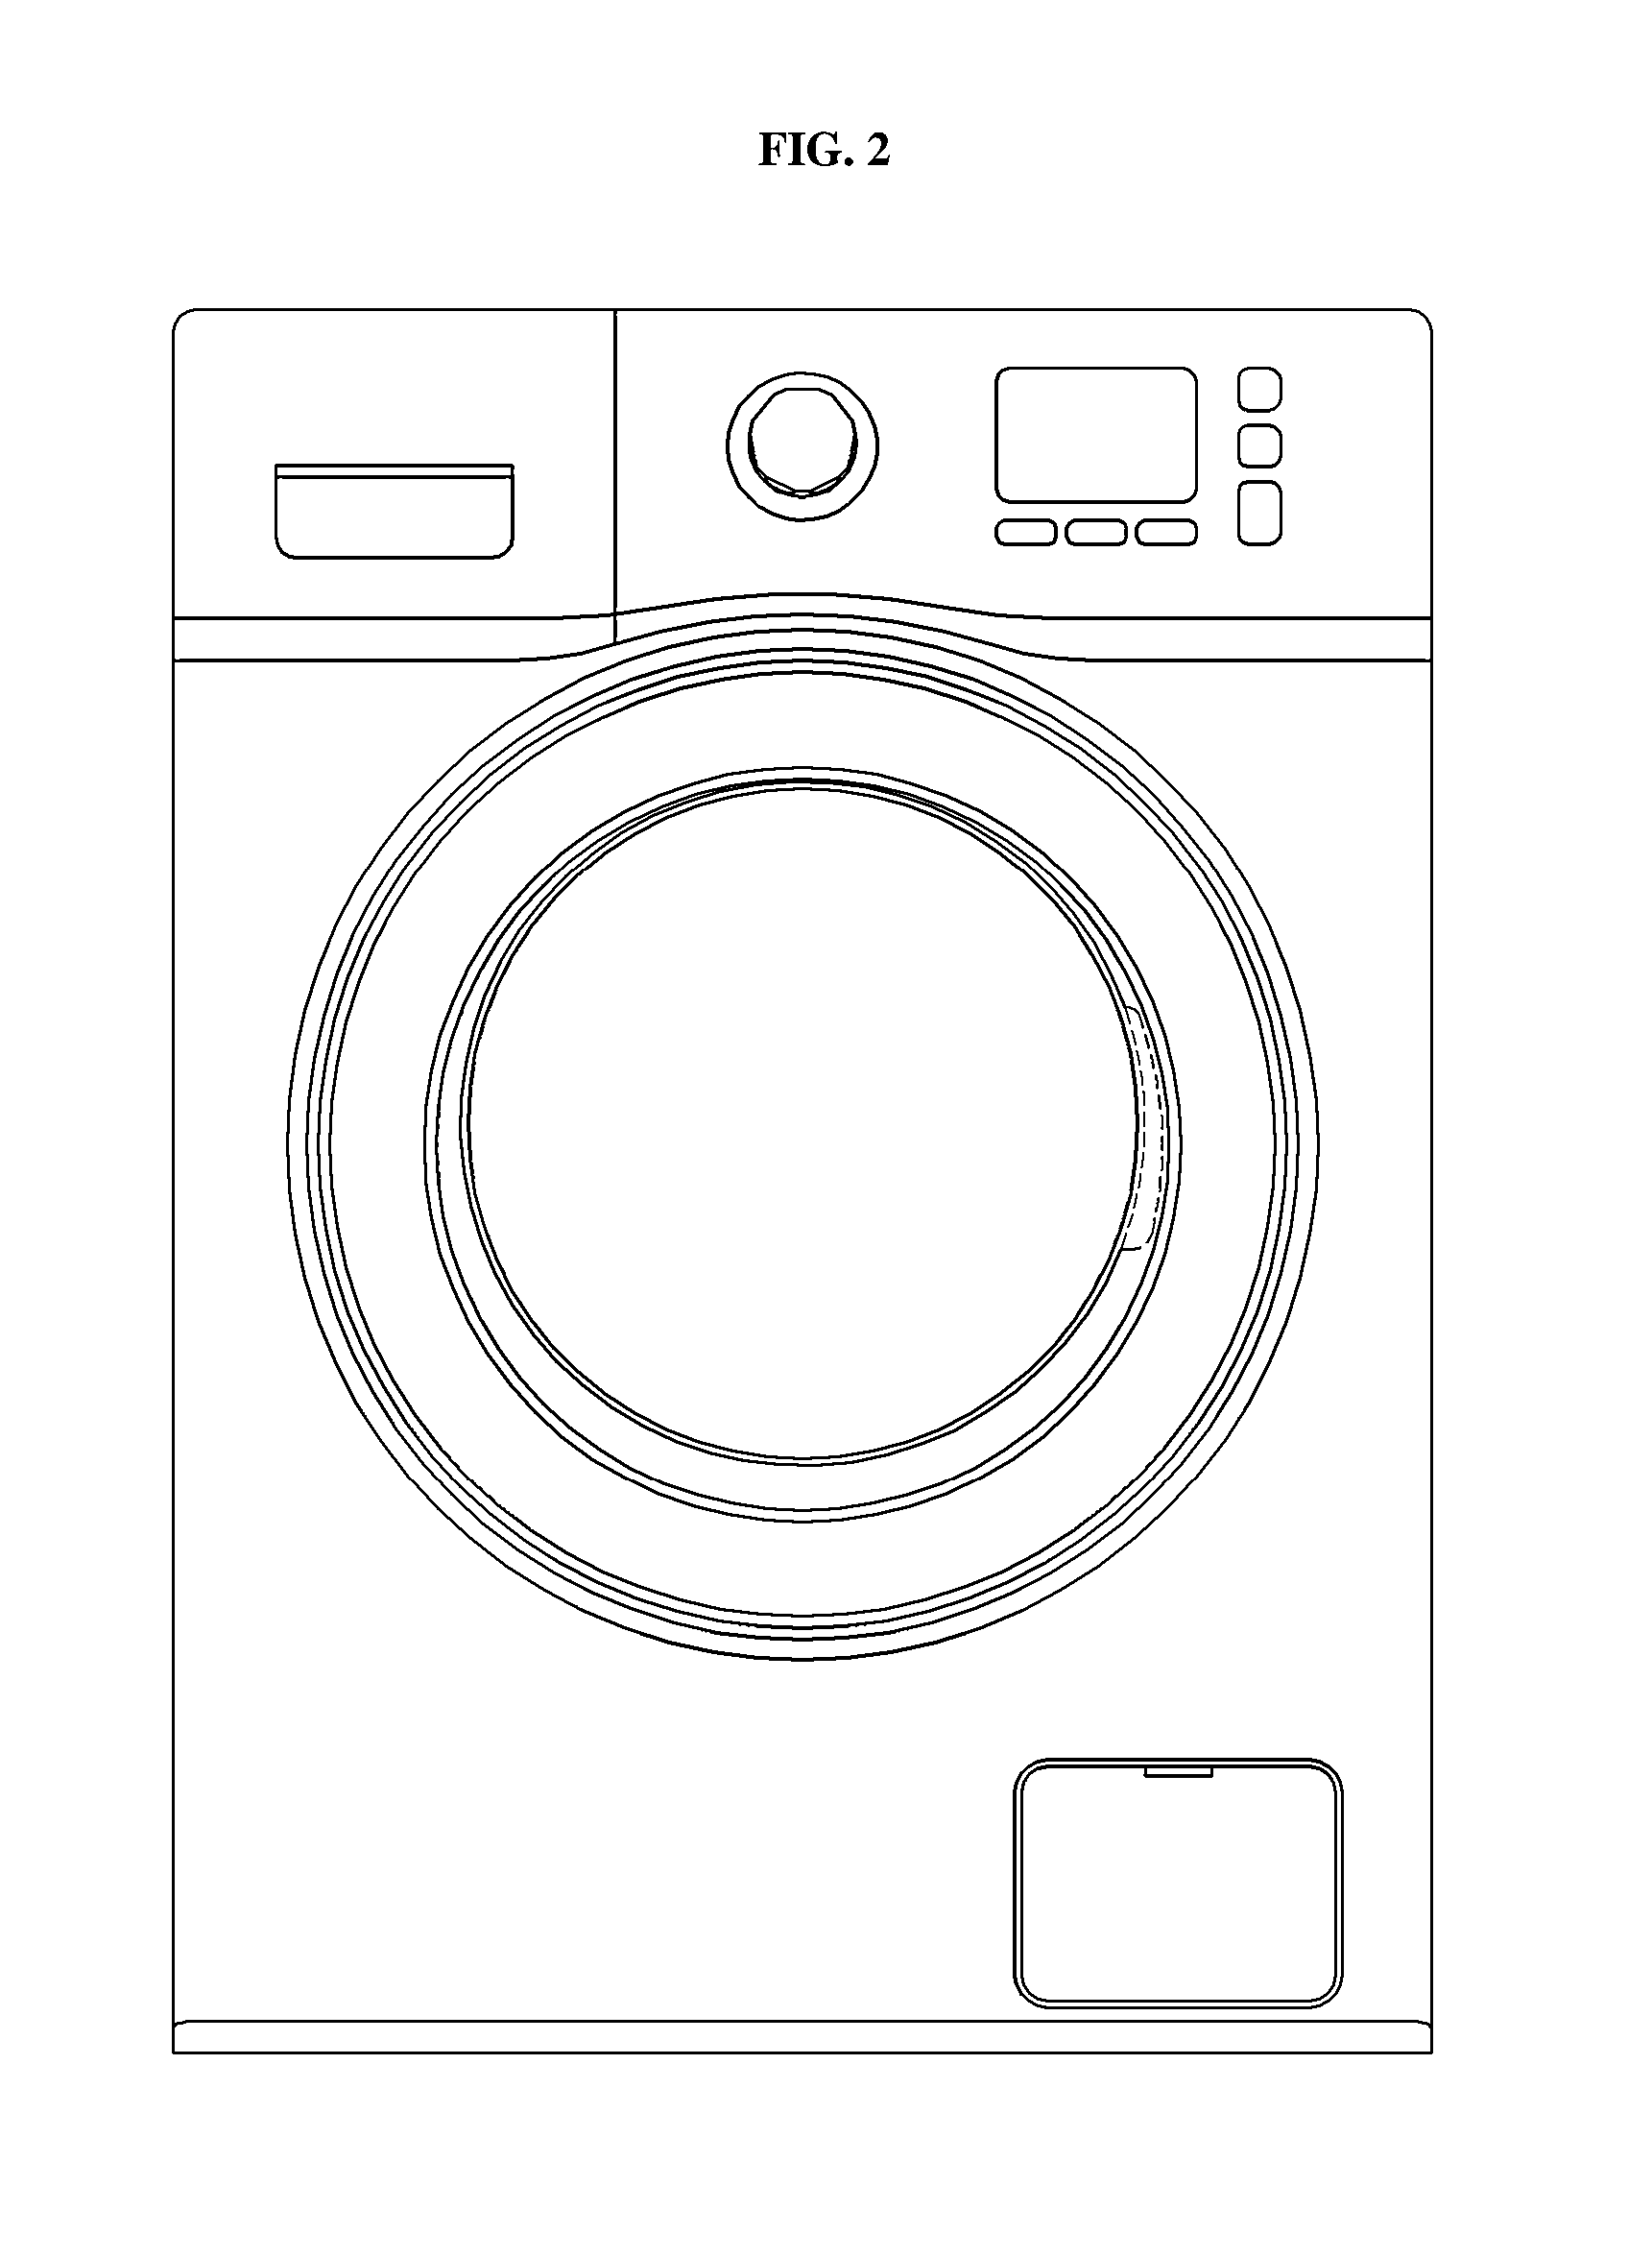 Washing Machine Simple Drawing